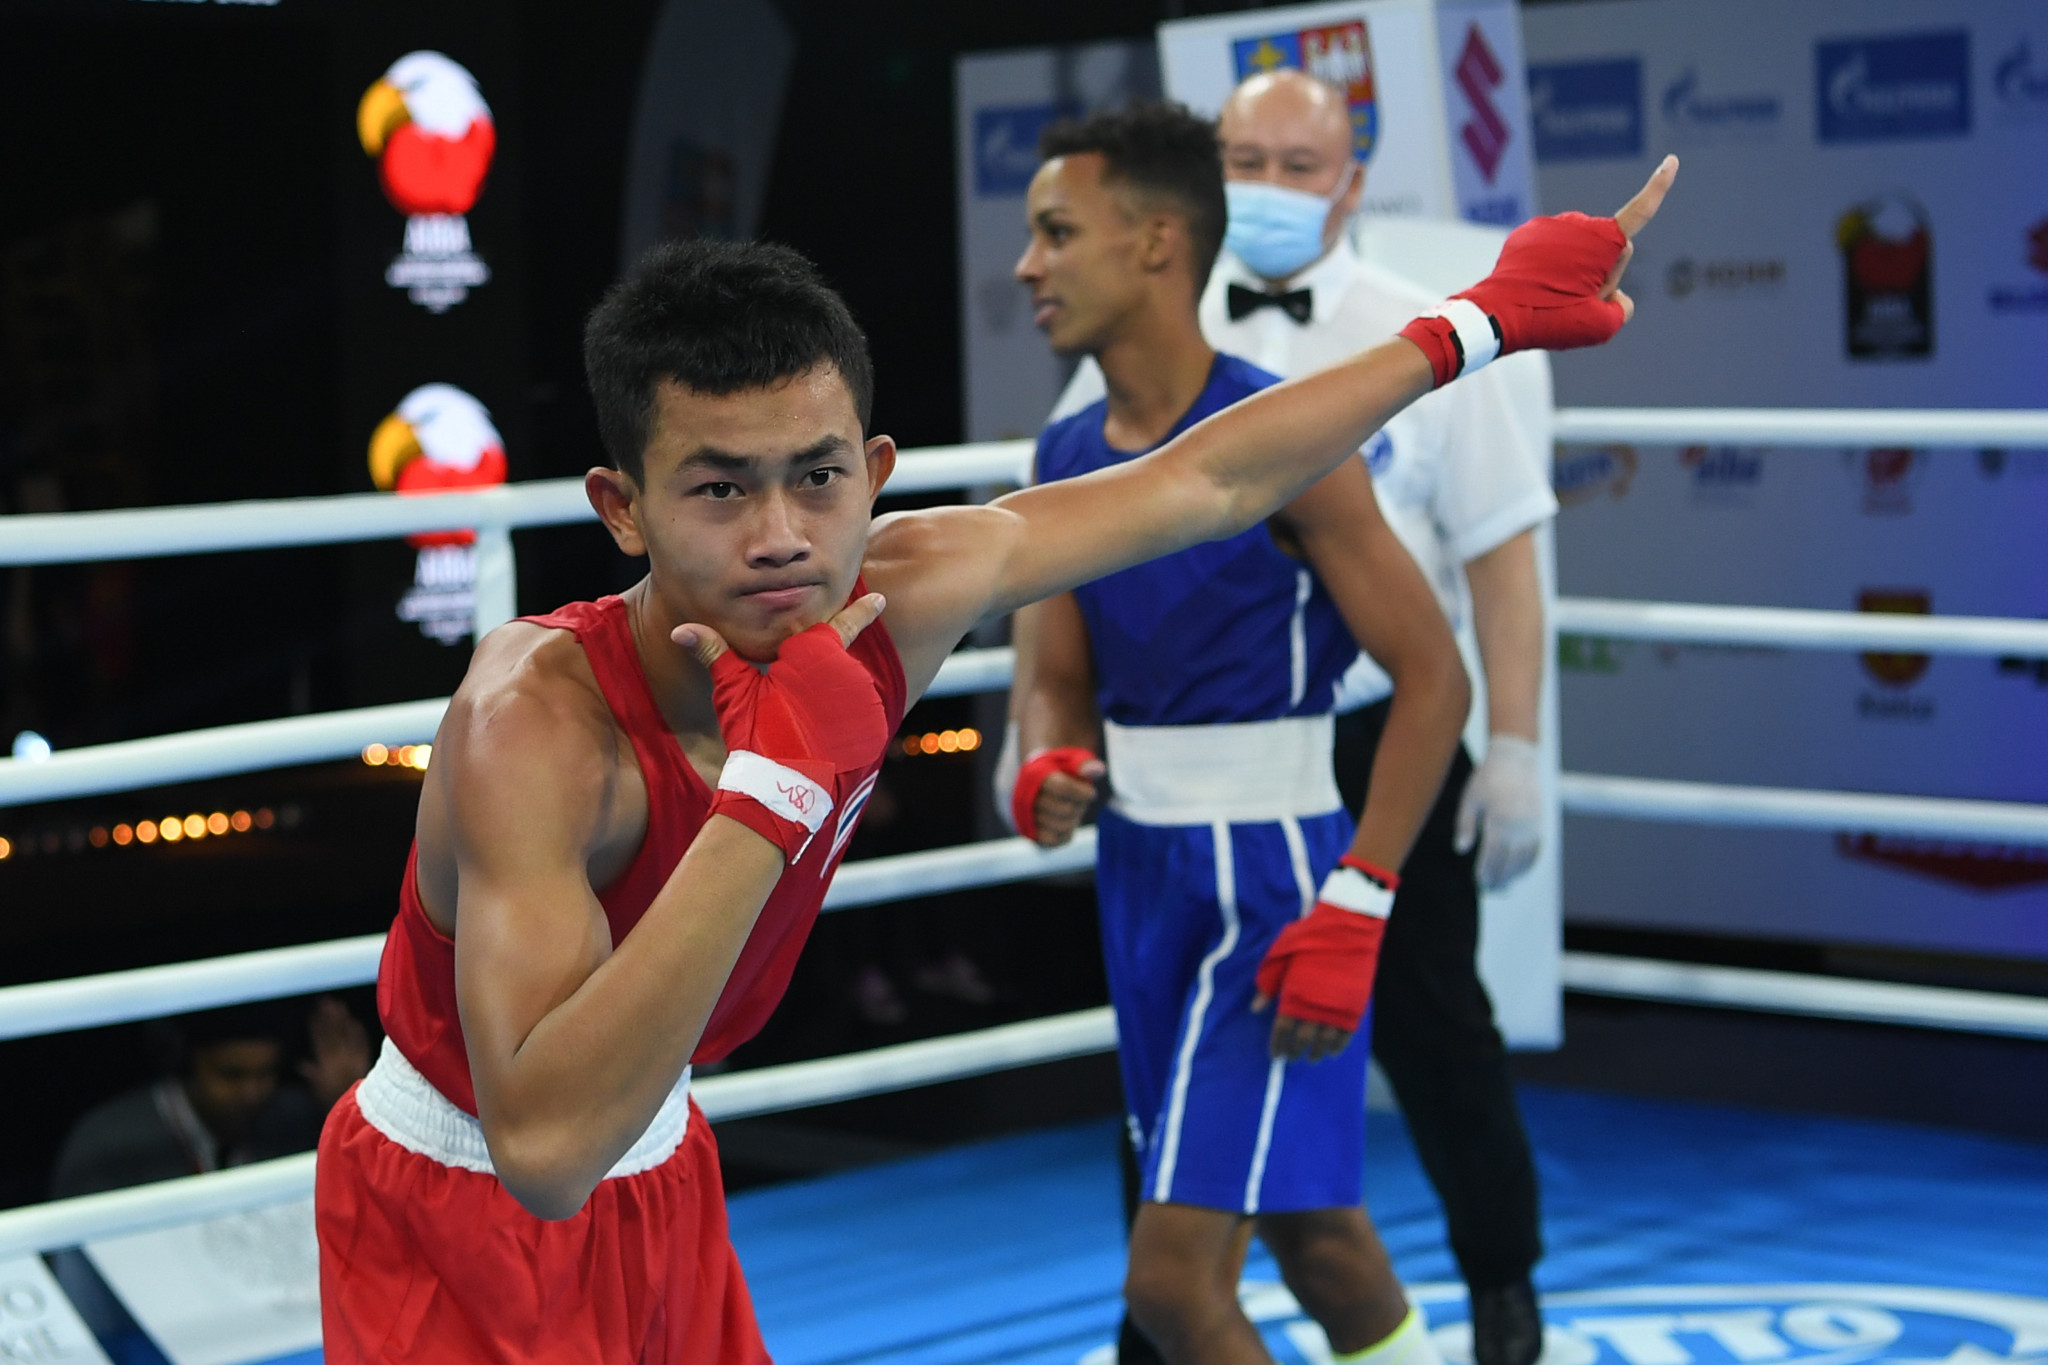 A fighter strikes a thoughtful pose in the ring in Kielce ©AIBA